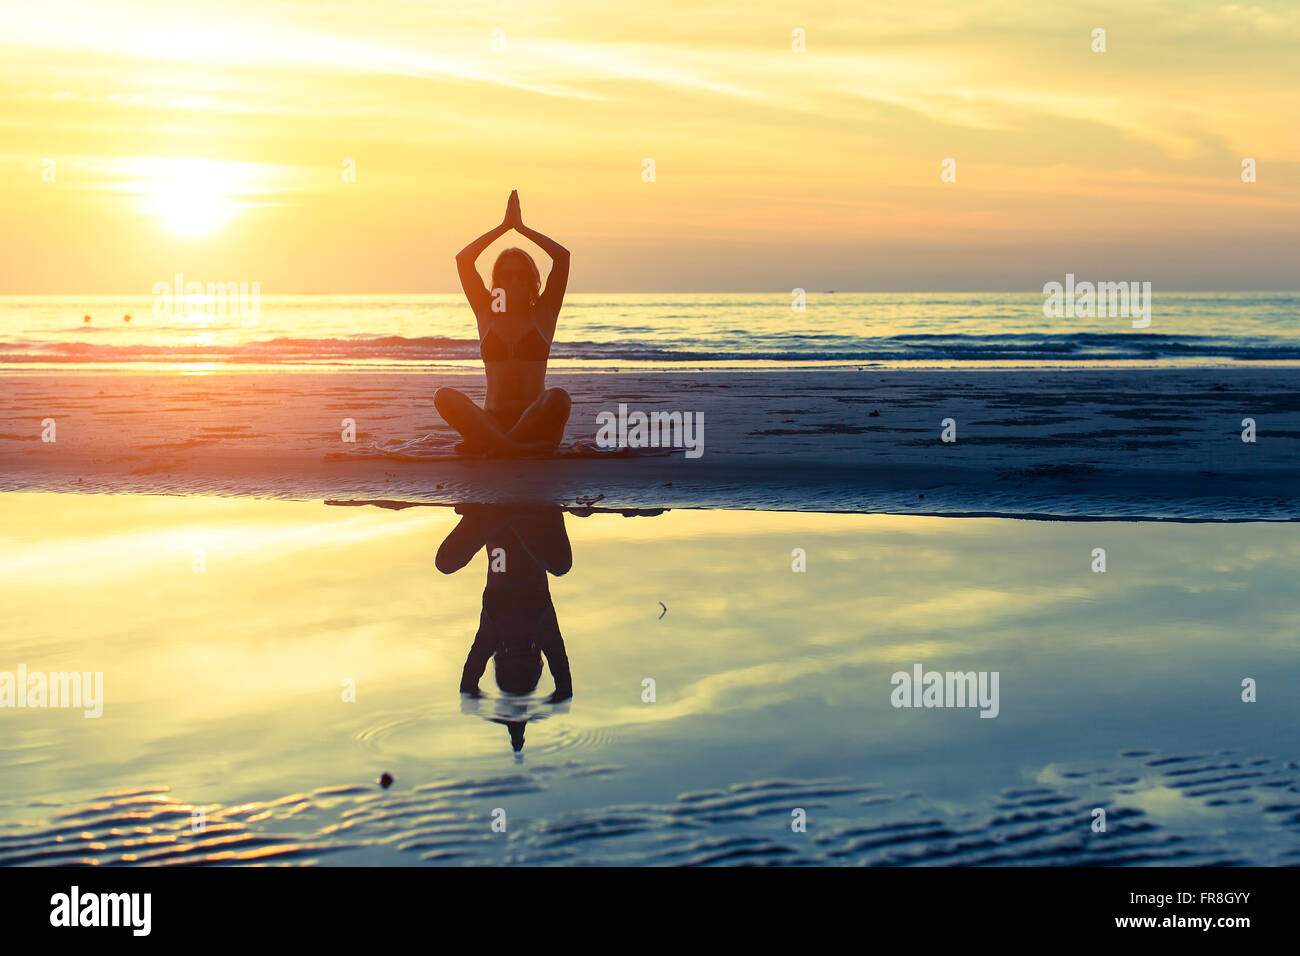 Silhouette yoga woman sitting on the beach with reflection in water at sunset. - Stock Image